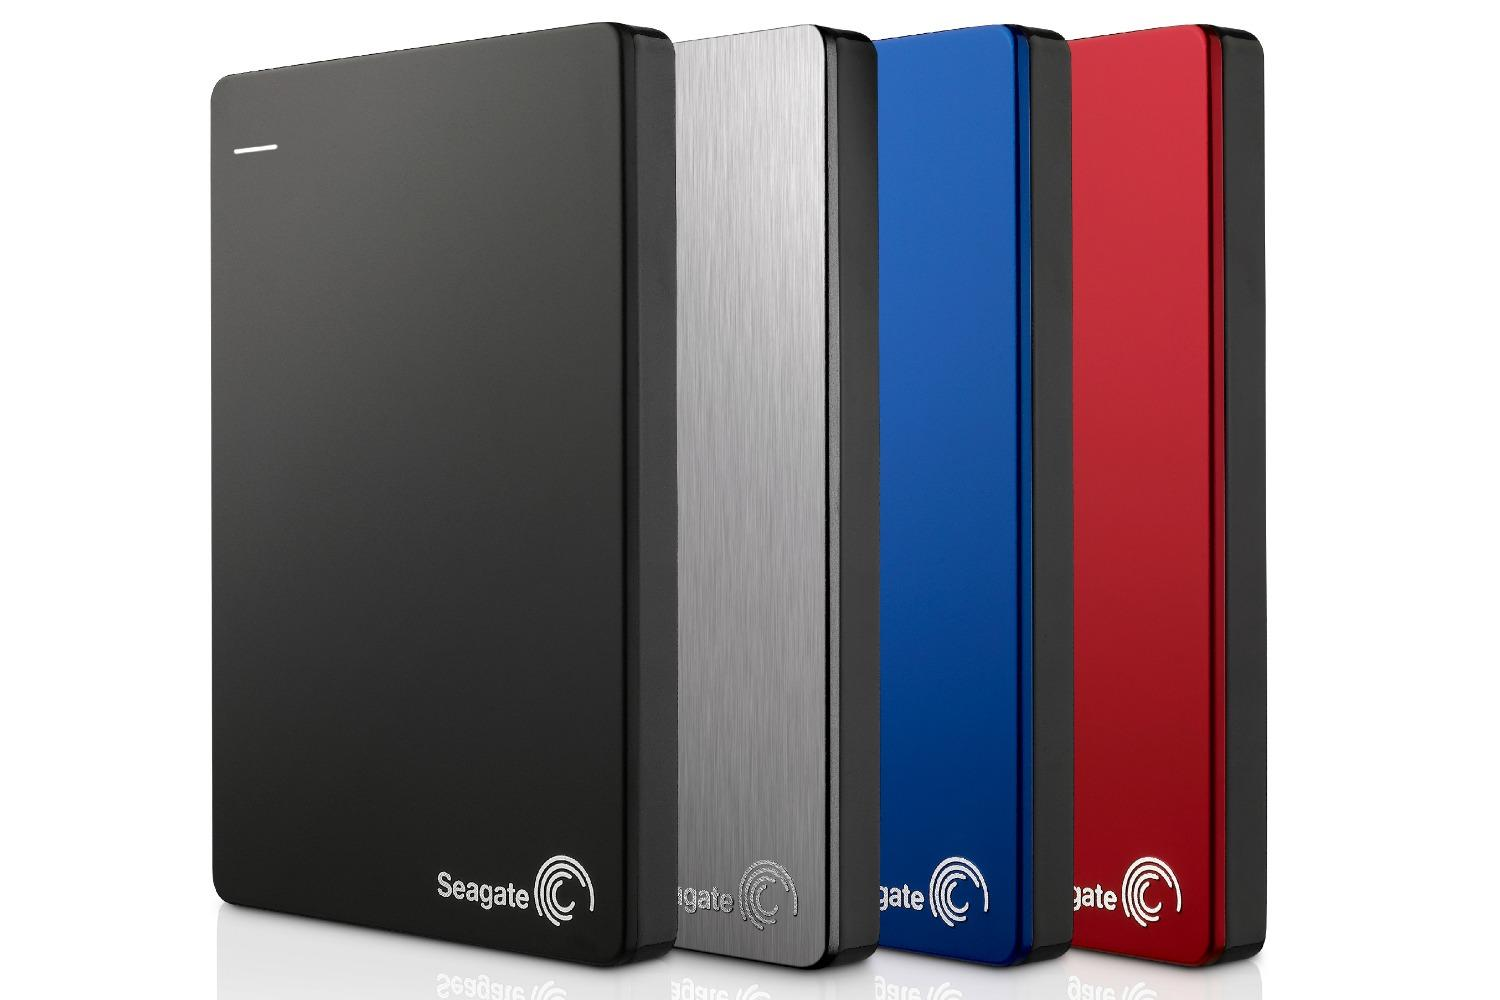 هارد اكسترنال - External H.D سيگيت-Seagate Backup Plus Slim-1TB- USB 3.0-USB 2.0